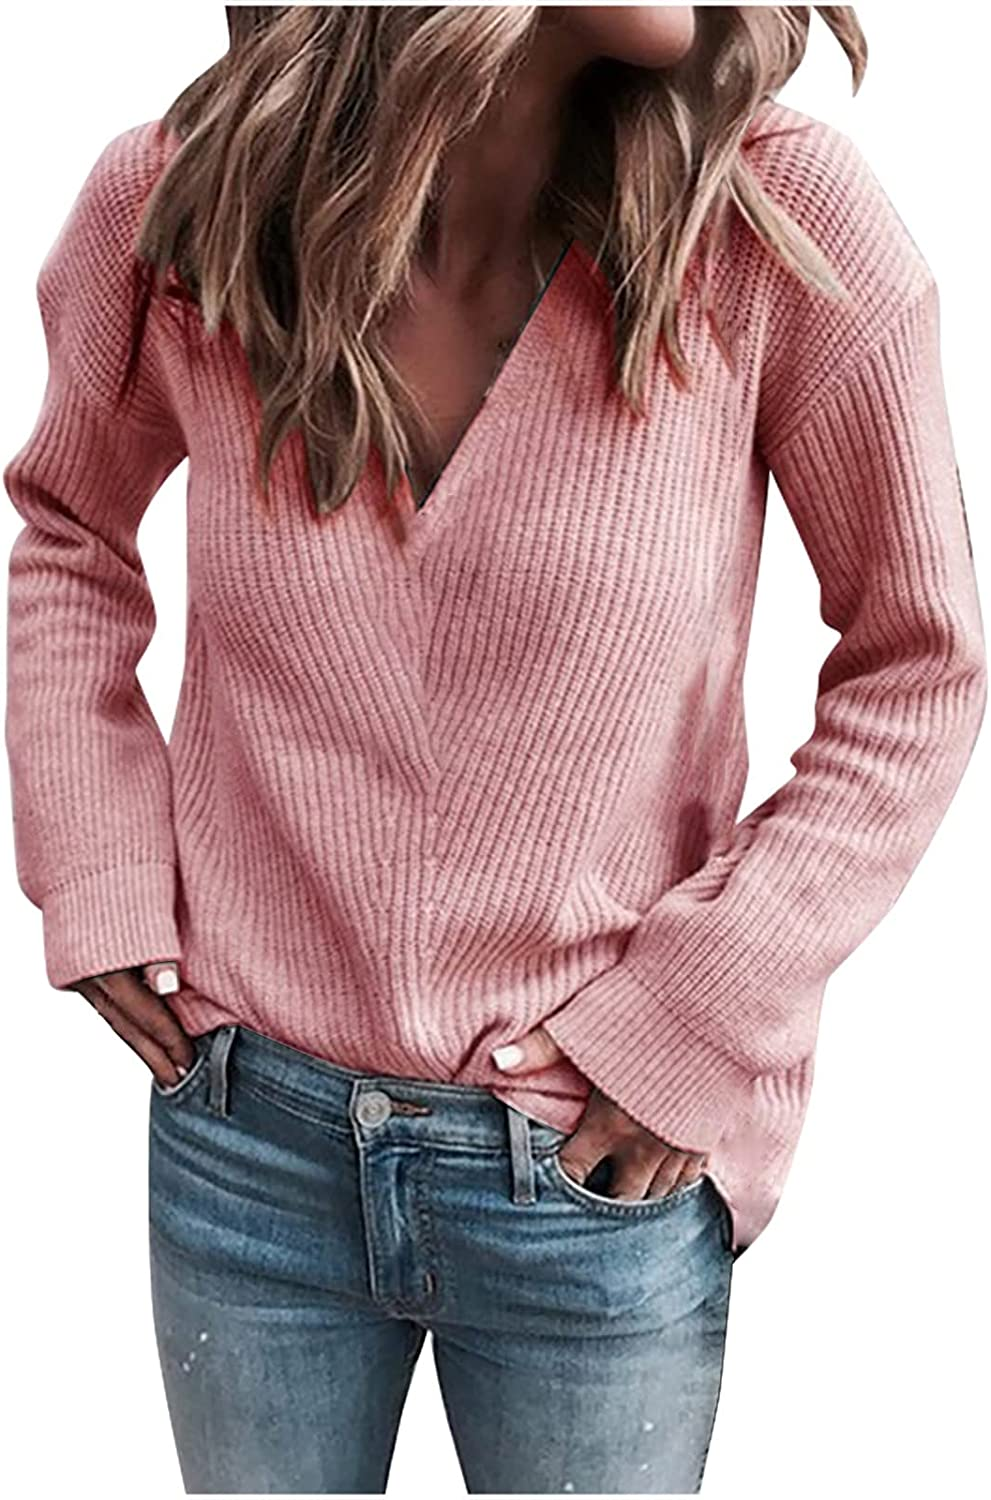 iLUGU Women's Casual V Neck Sweater Ribbed Knitted Solid Long Sleeve Loose Pullover Tops Blouse